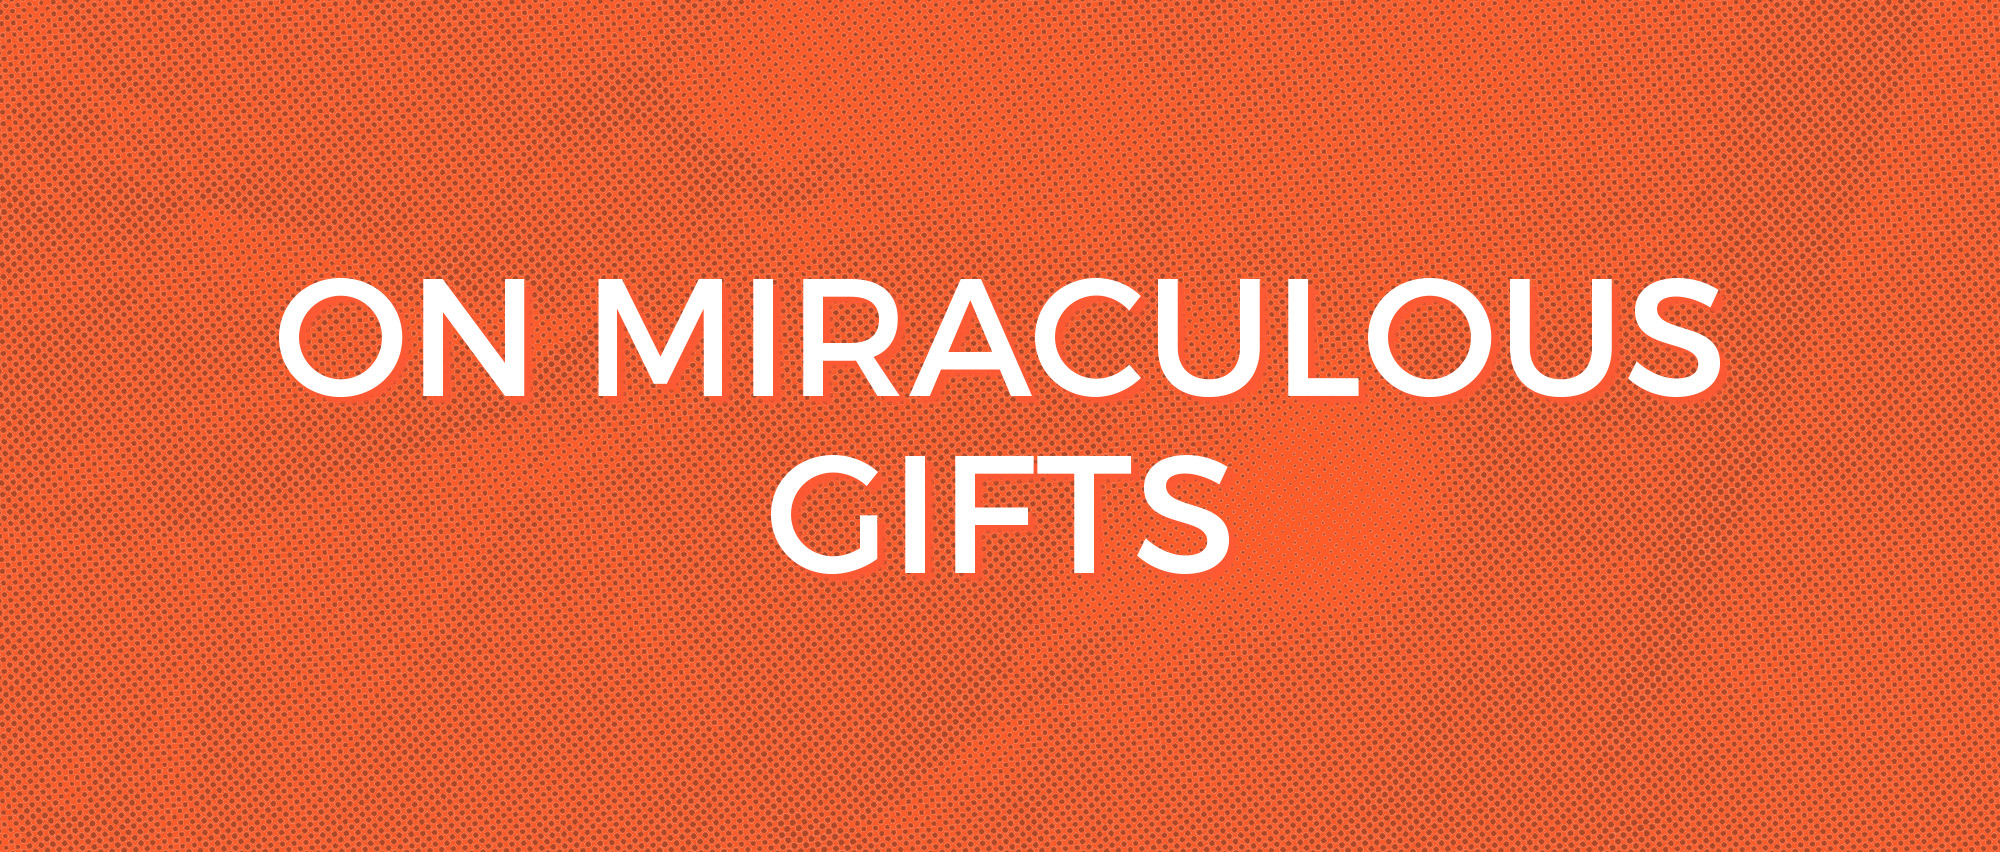 On Miraculous Gifts.jpg